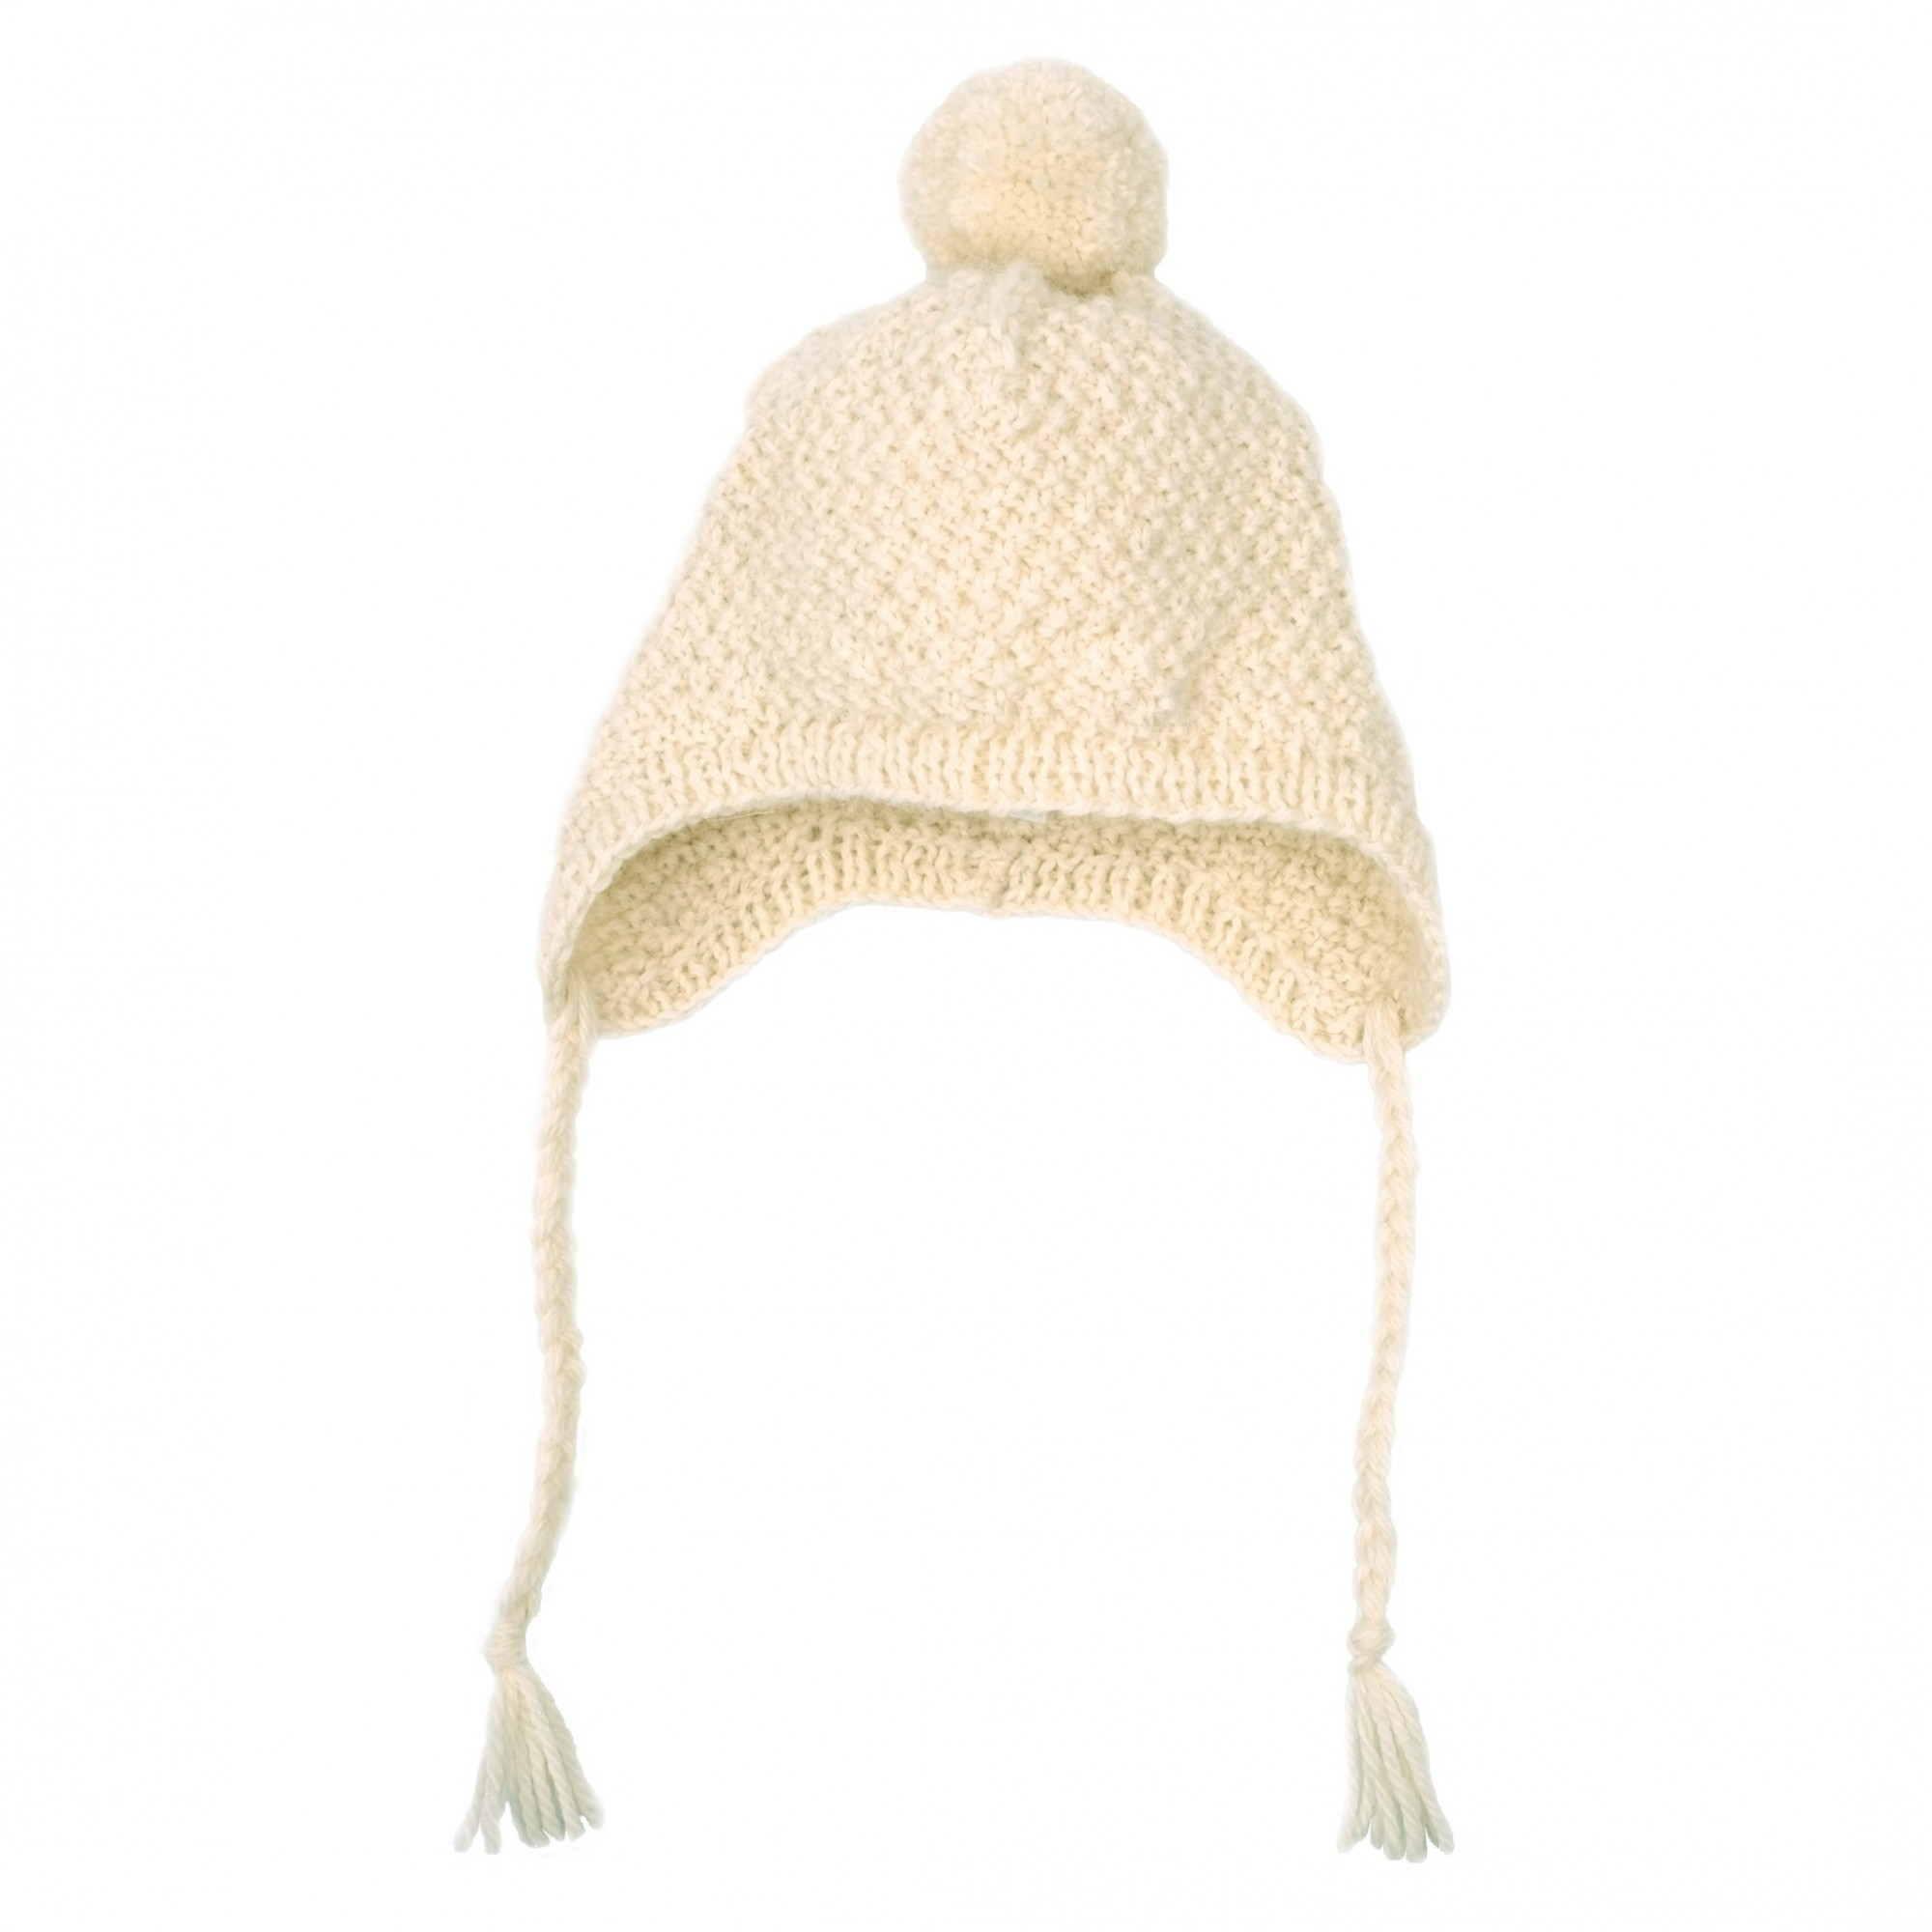 d9ba8a75338 Emile cap for baby - Natural white color - hand knitted made from wool and  alpaca